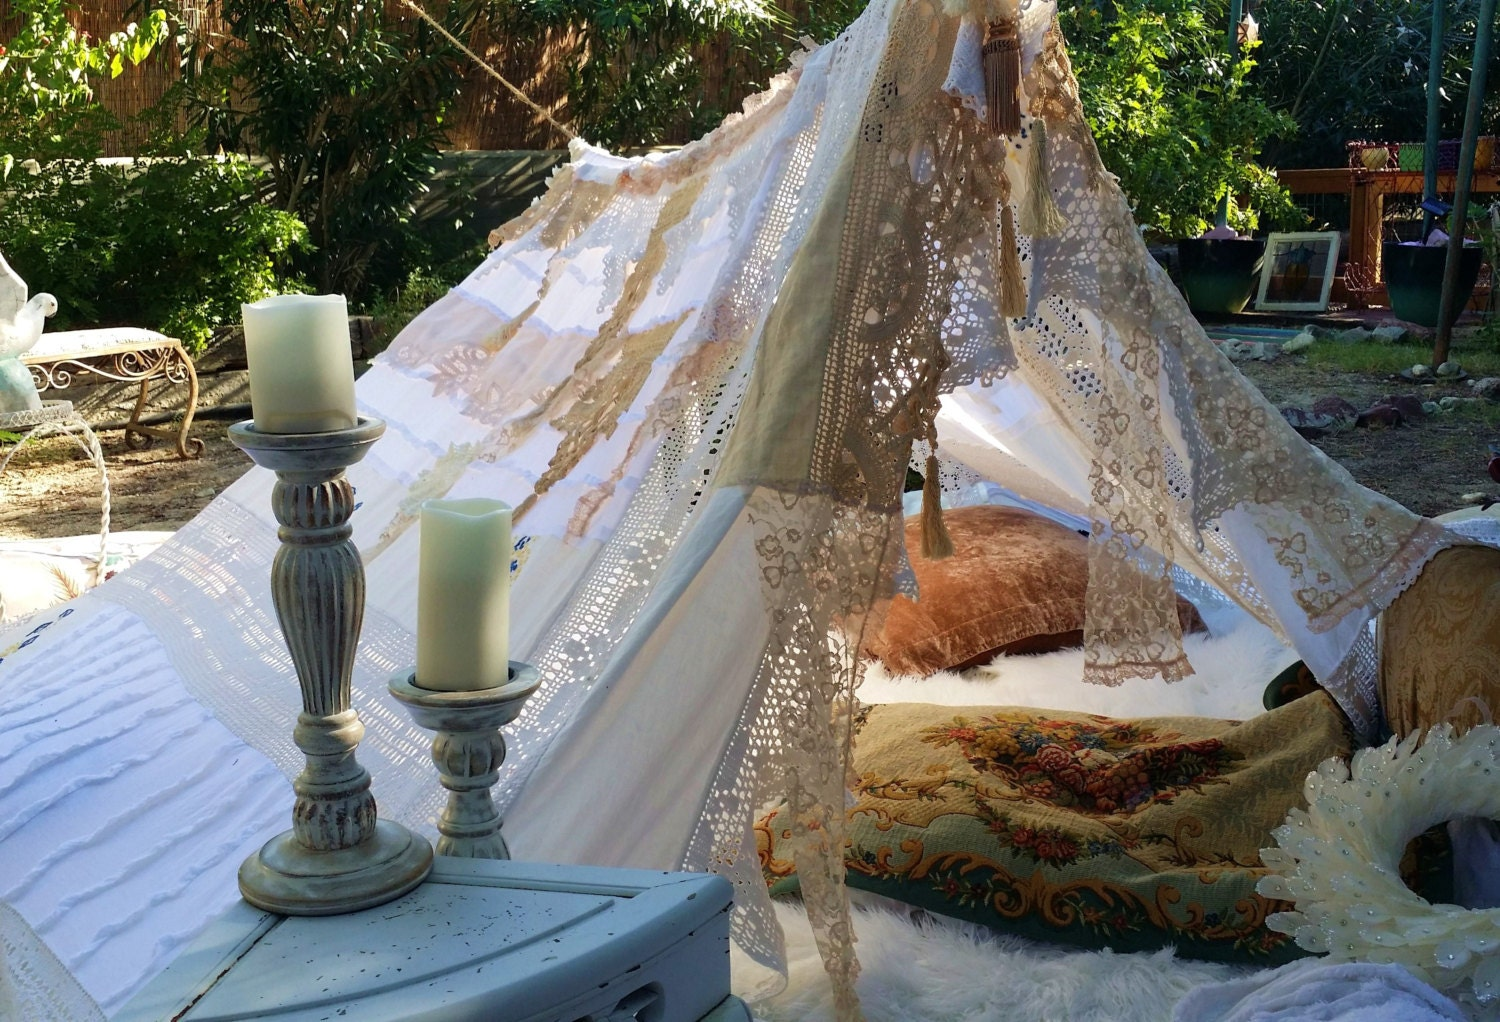 ?zoom & Vintage Wedding Tent teepee Hippie Decor MADE TO ORDER Antique